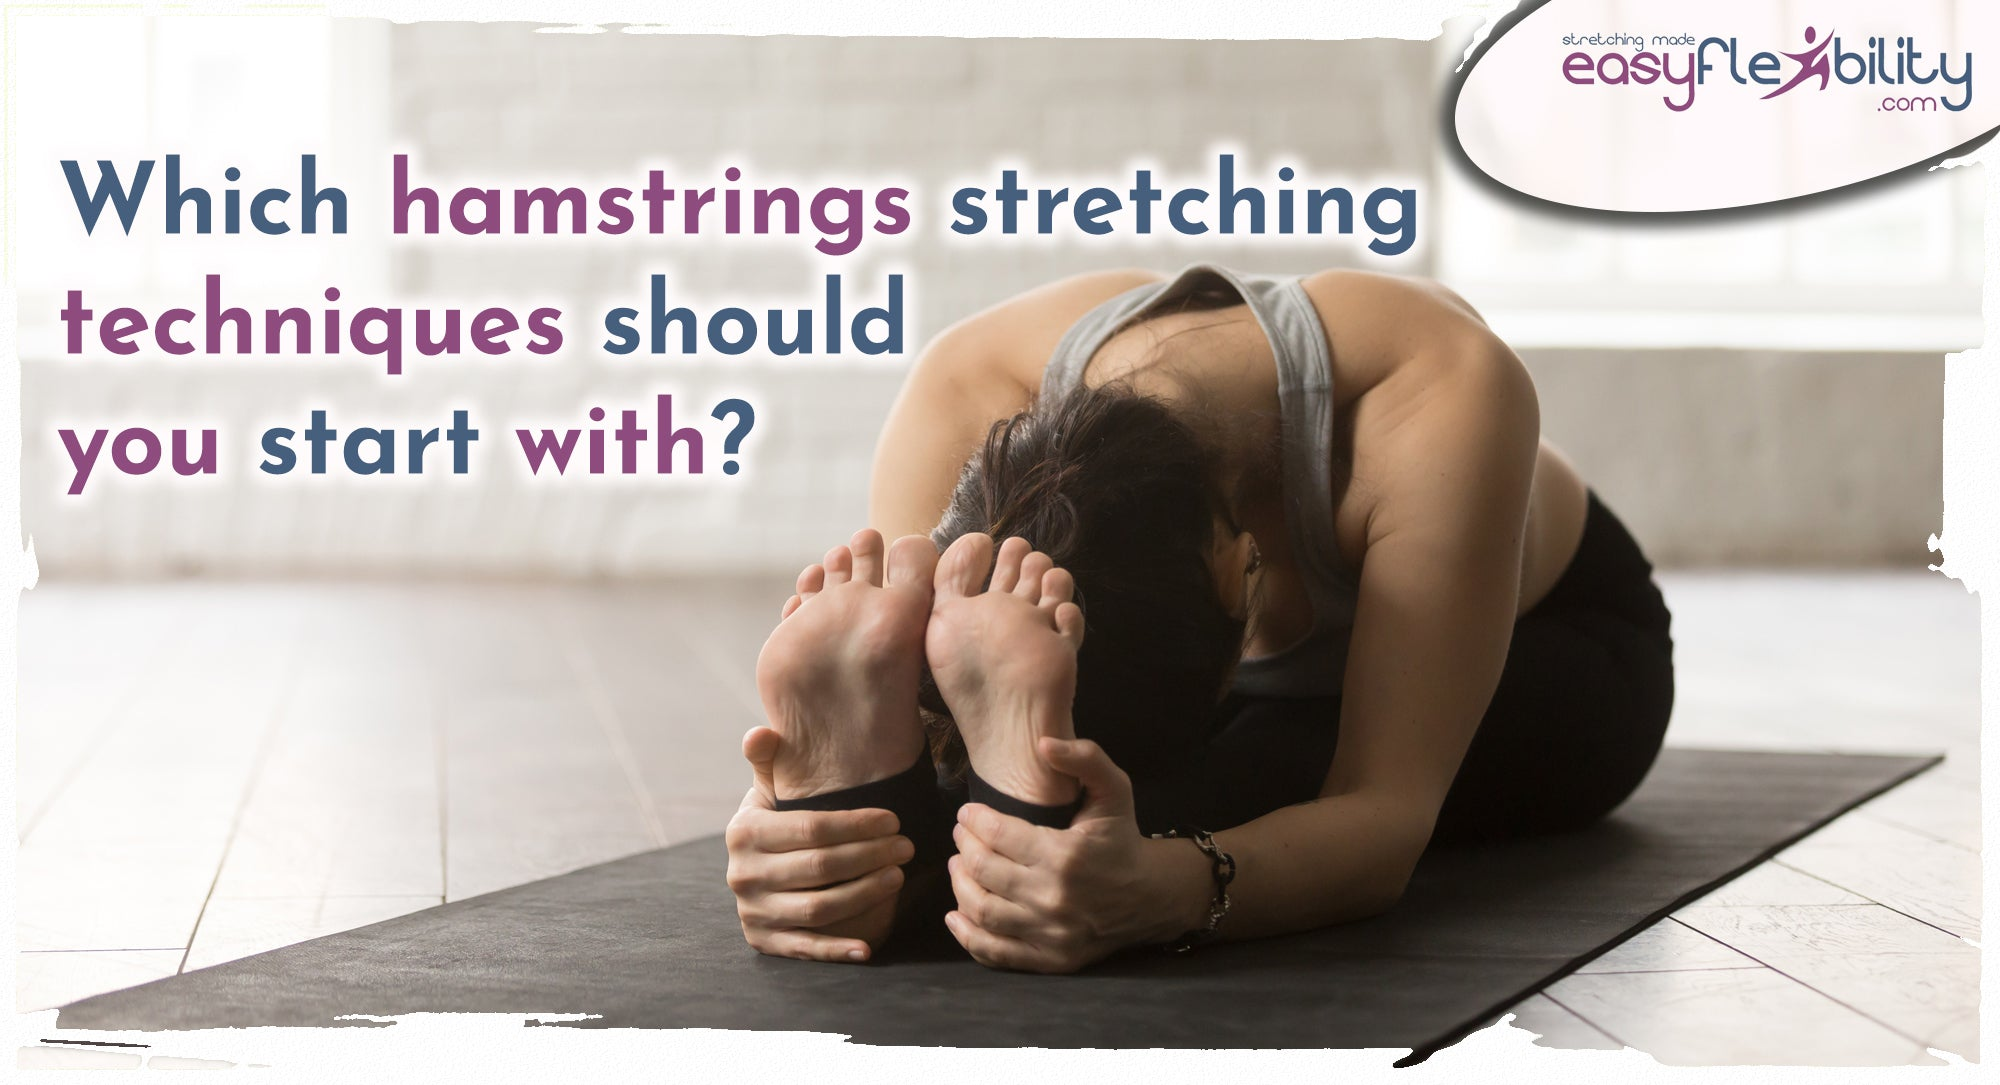 Which hamstrings stretching techniques should you start with?